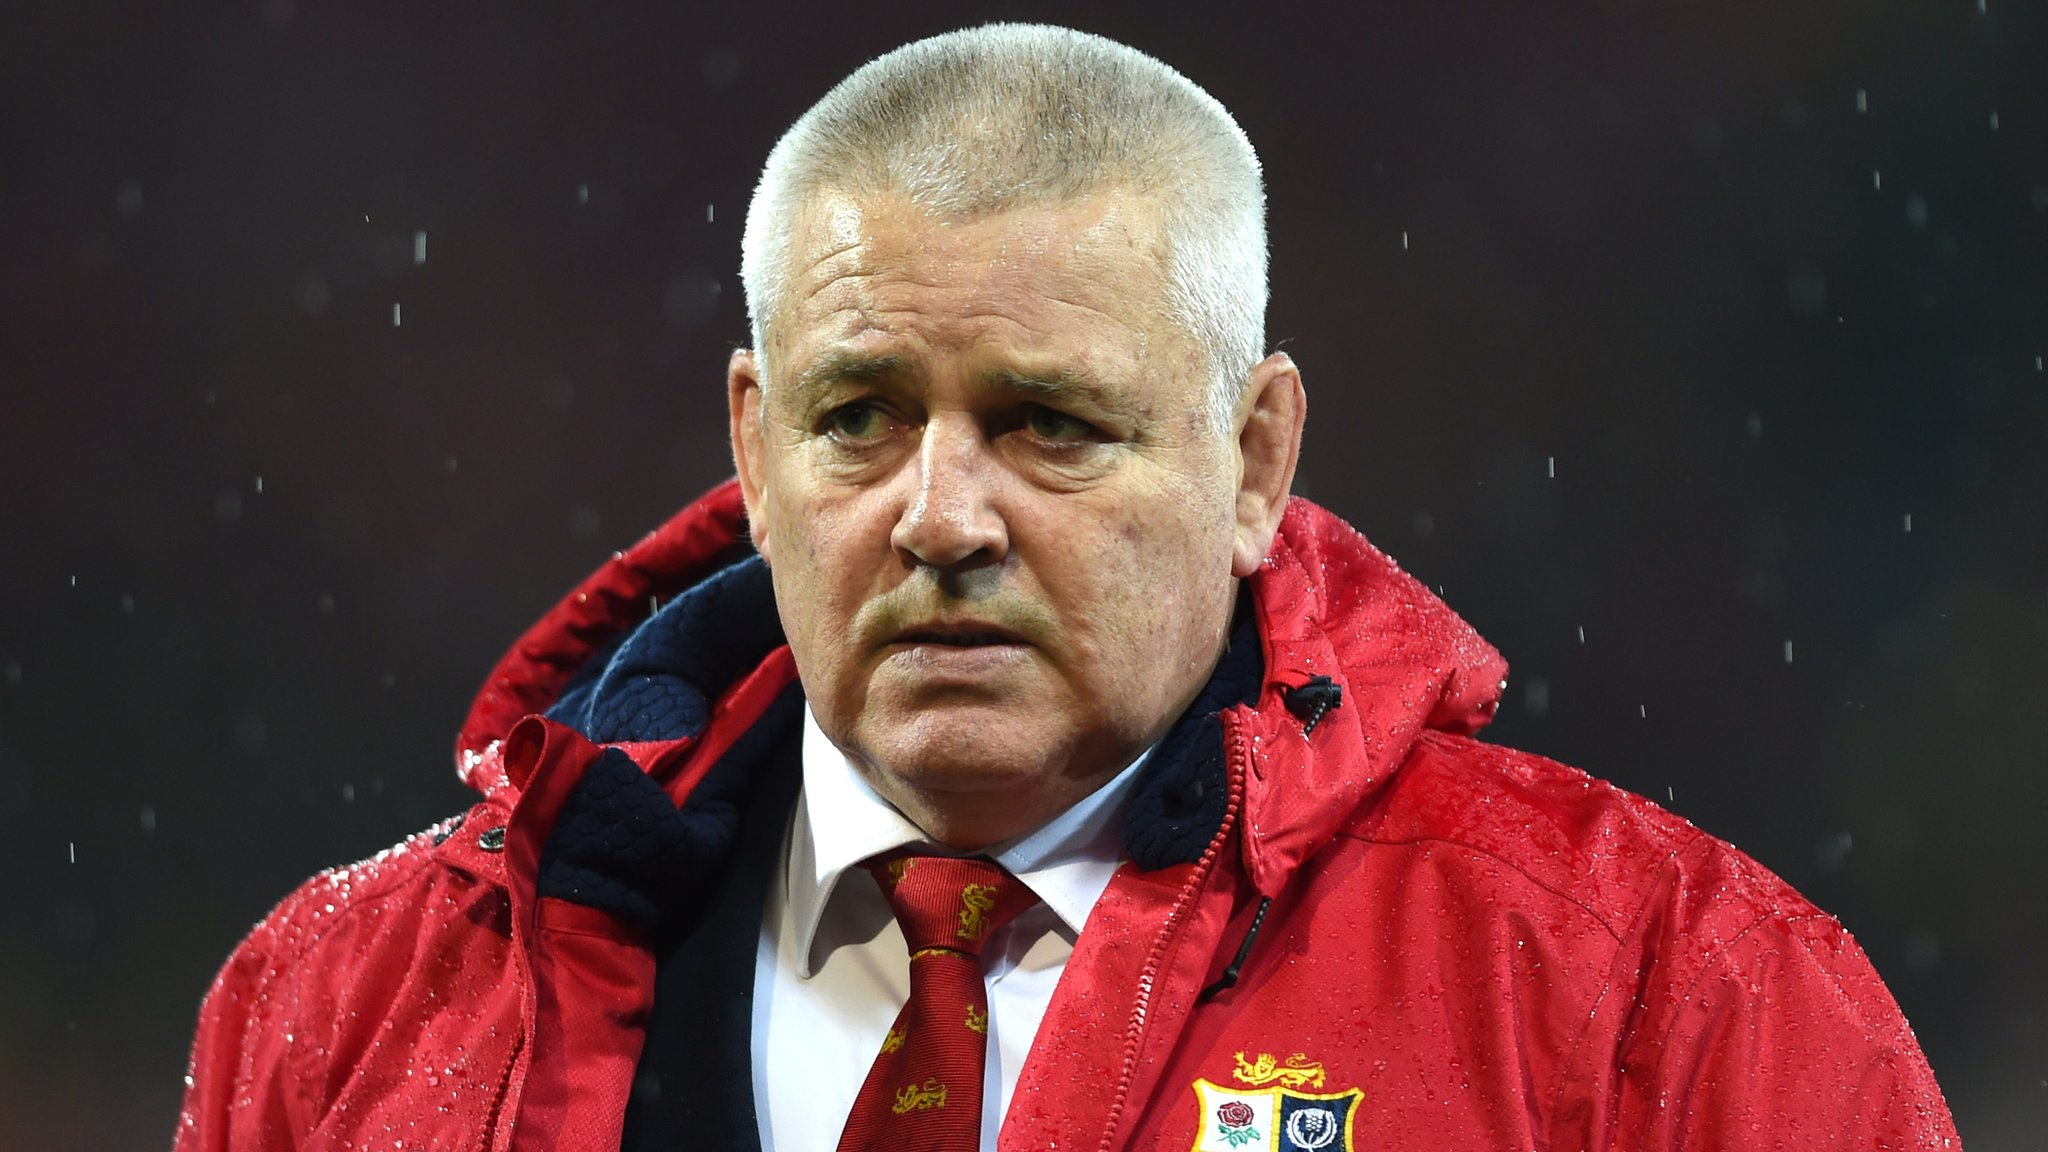 Warren Gatland: Wales coach ideal candidate for 2021 tour, says Matthew Rees